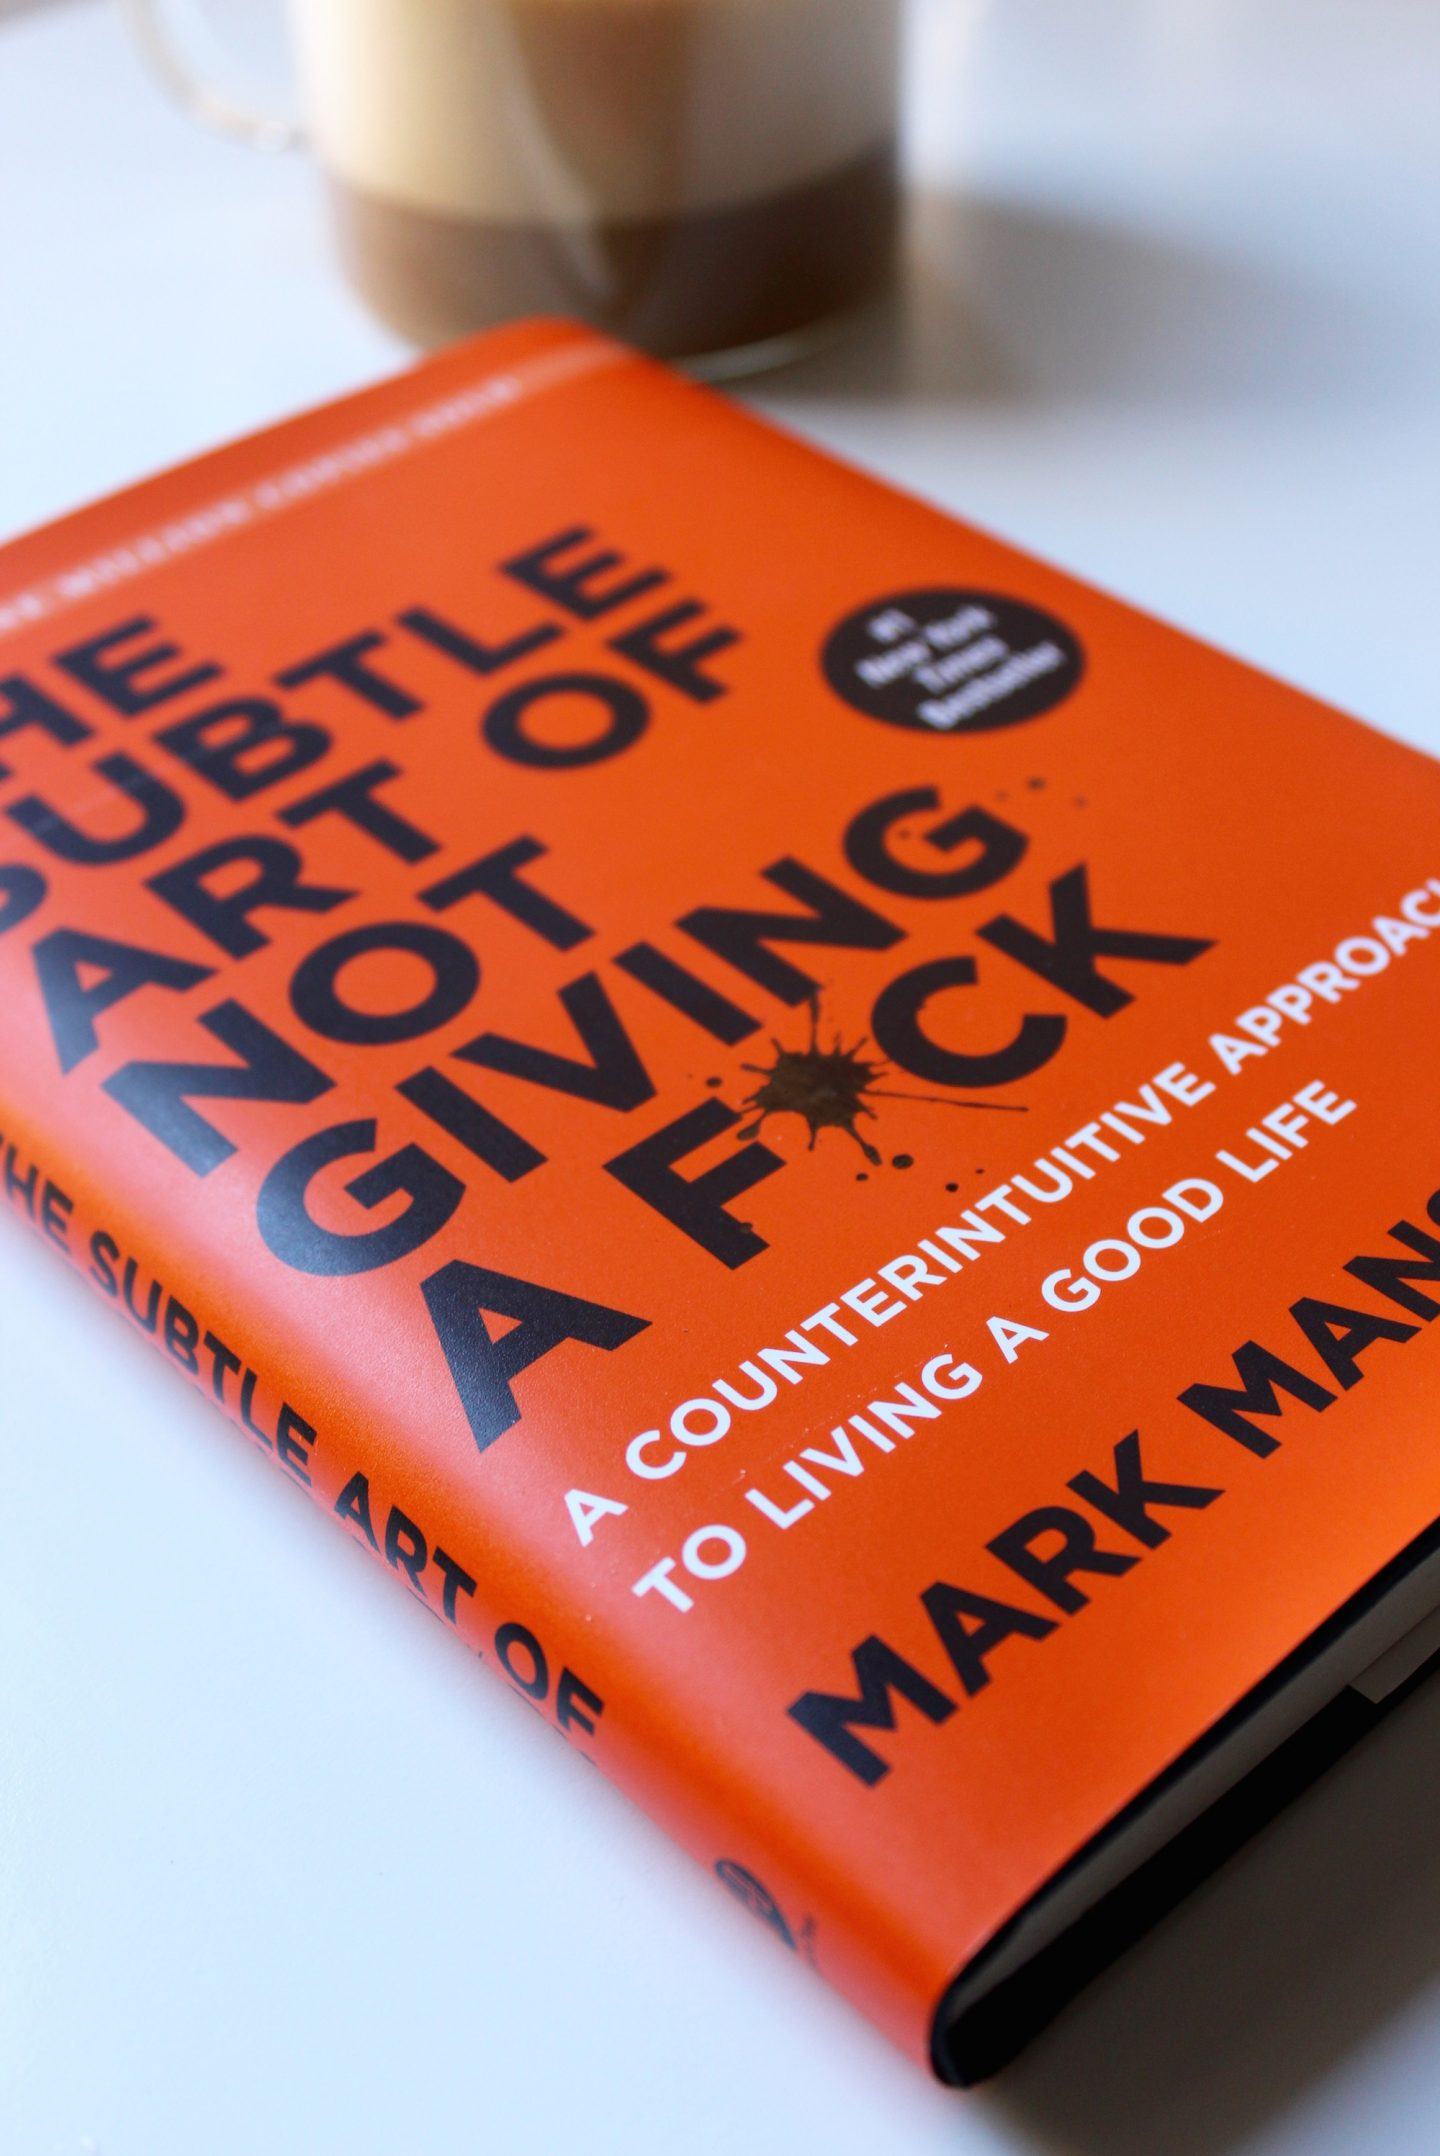 Learning The Subtle Art of Not Giving A F*ck | Book Review